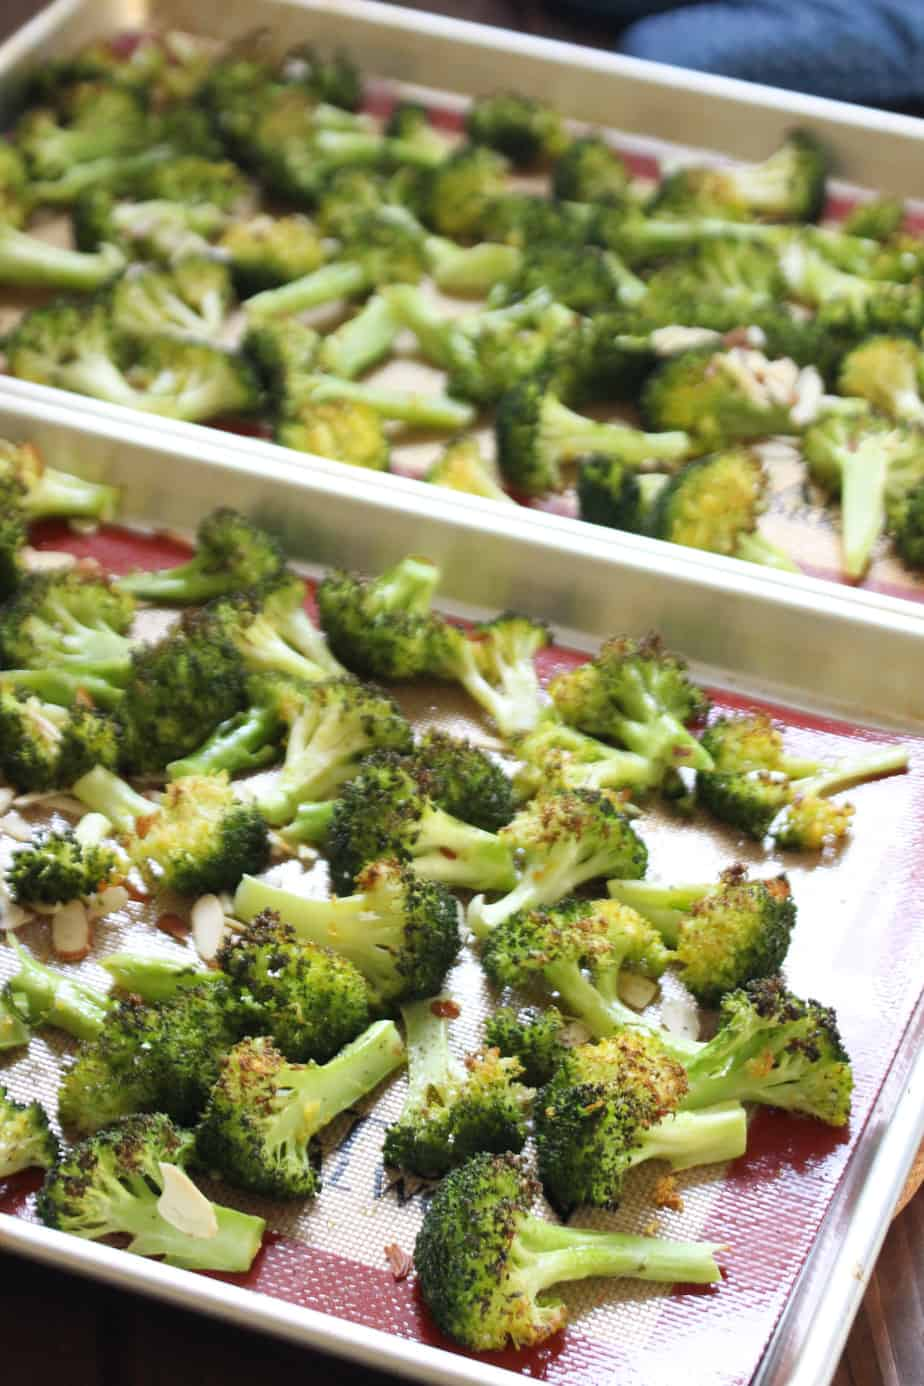 Lemon and Almond Roasted Broccoli   Frugal Nutrition